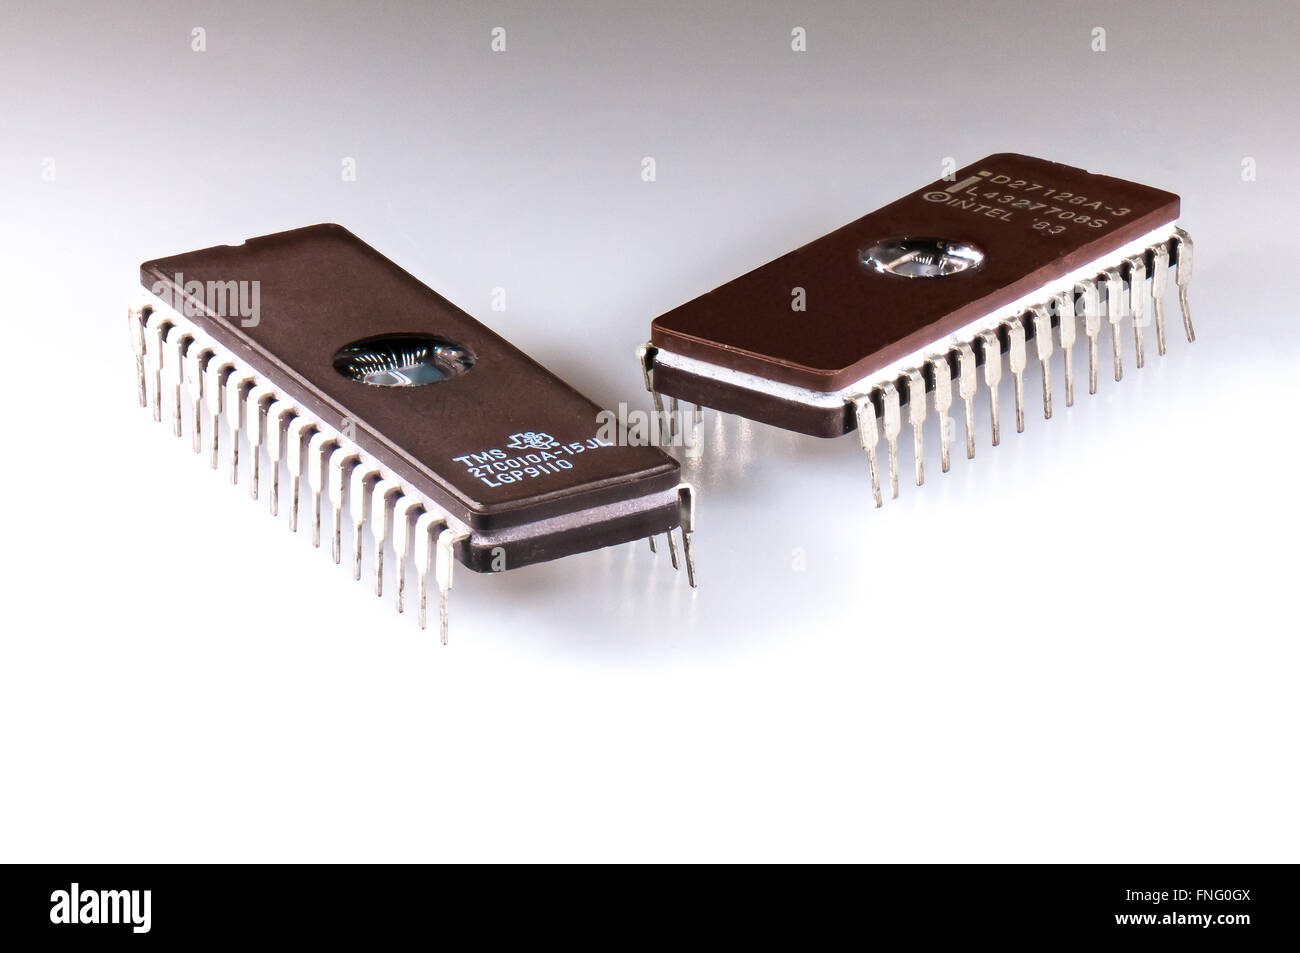 Two EPROM integrated circuit chips arranged on a white background - Stock Image